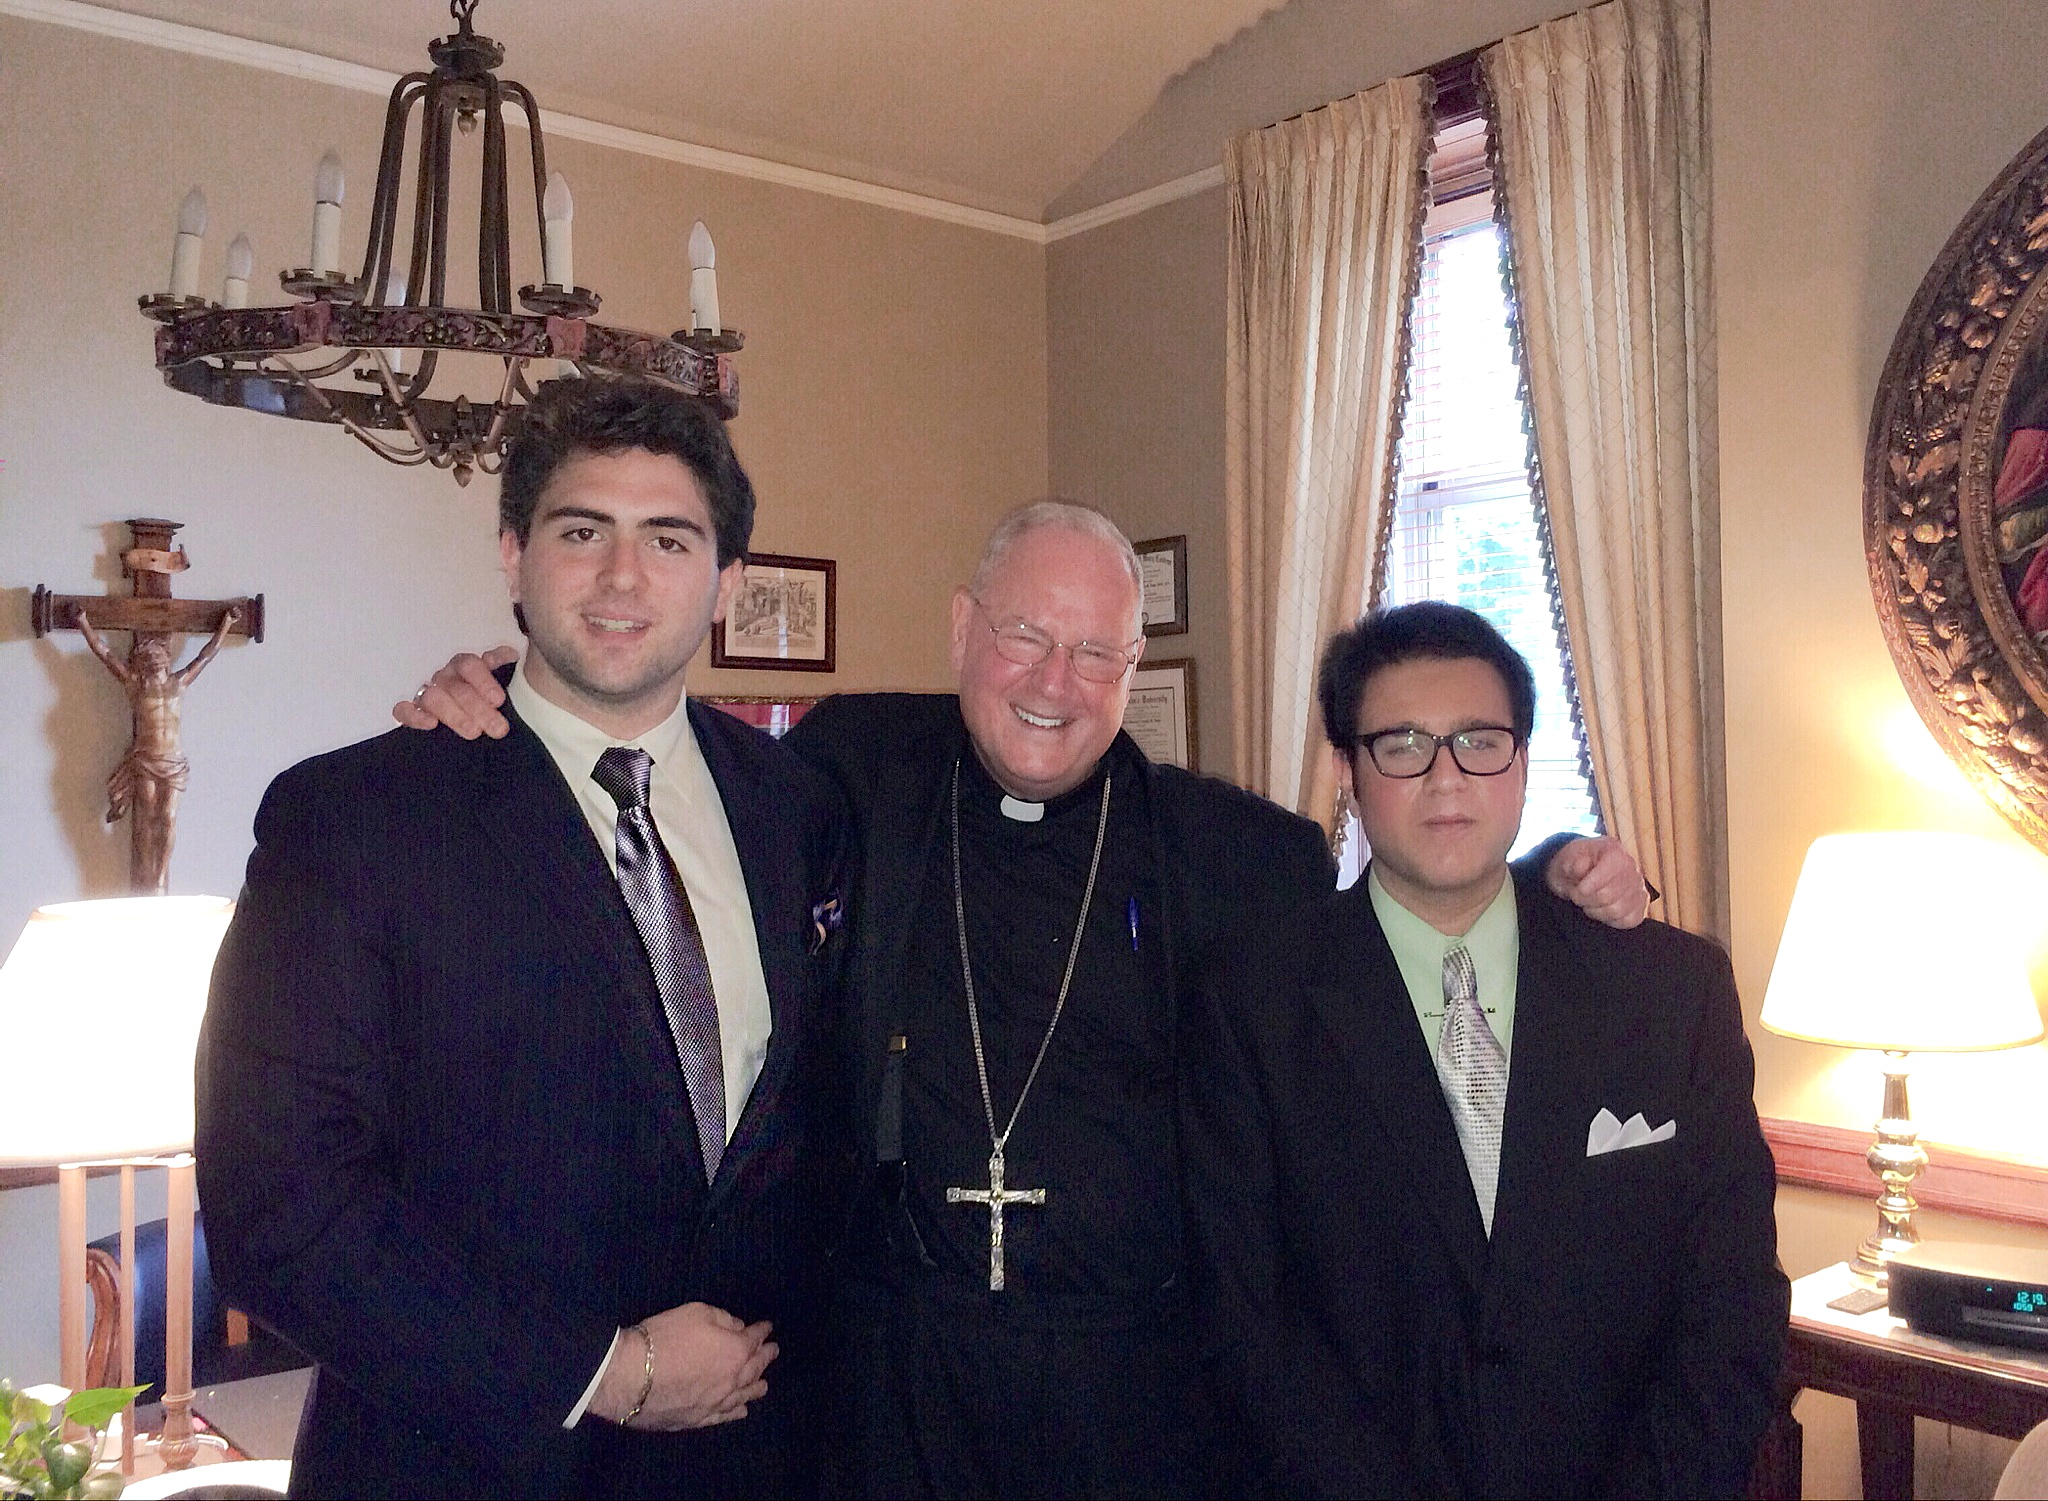 cardinal dolan on the ethical questions of our time generation cardinal dolan center michael menconi fcrh 14 left and ken